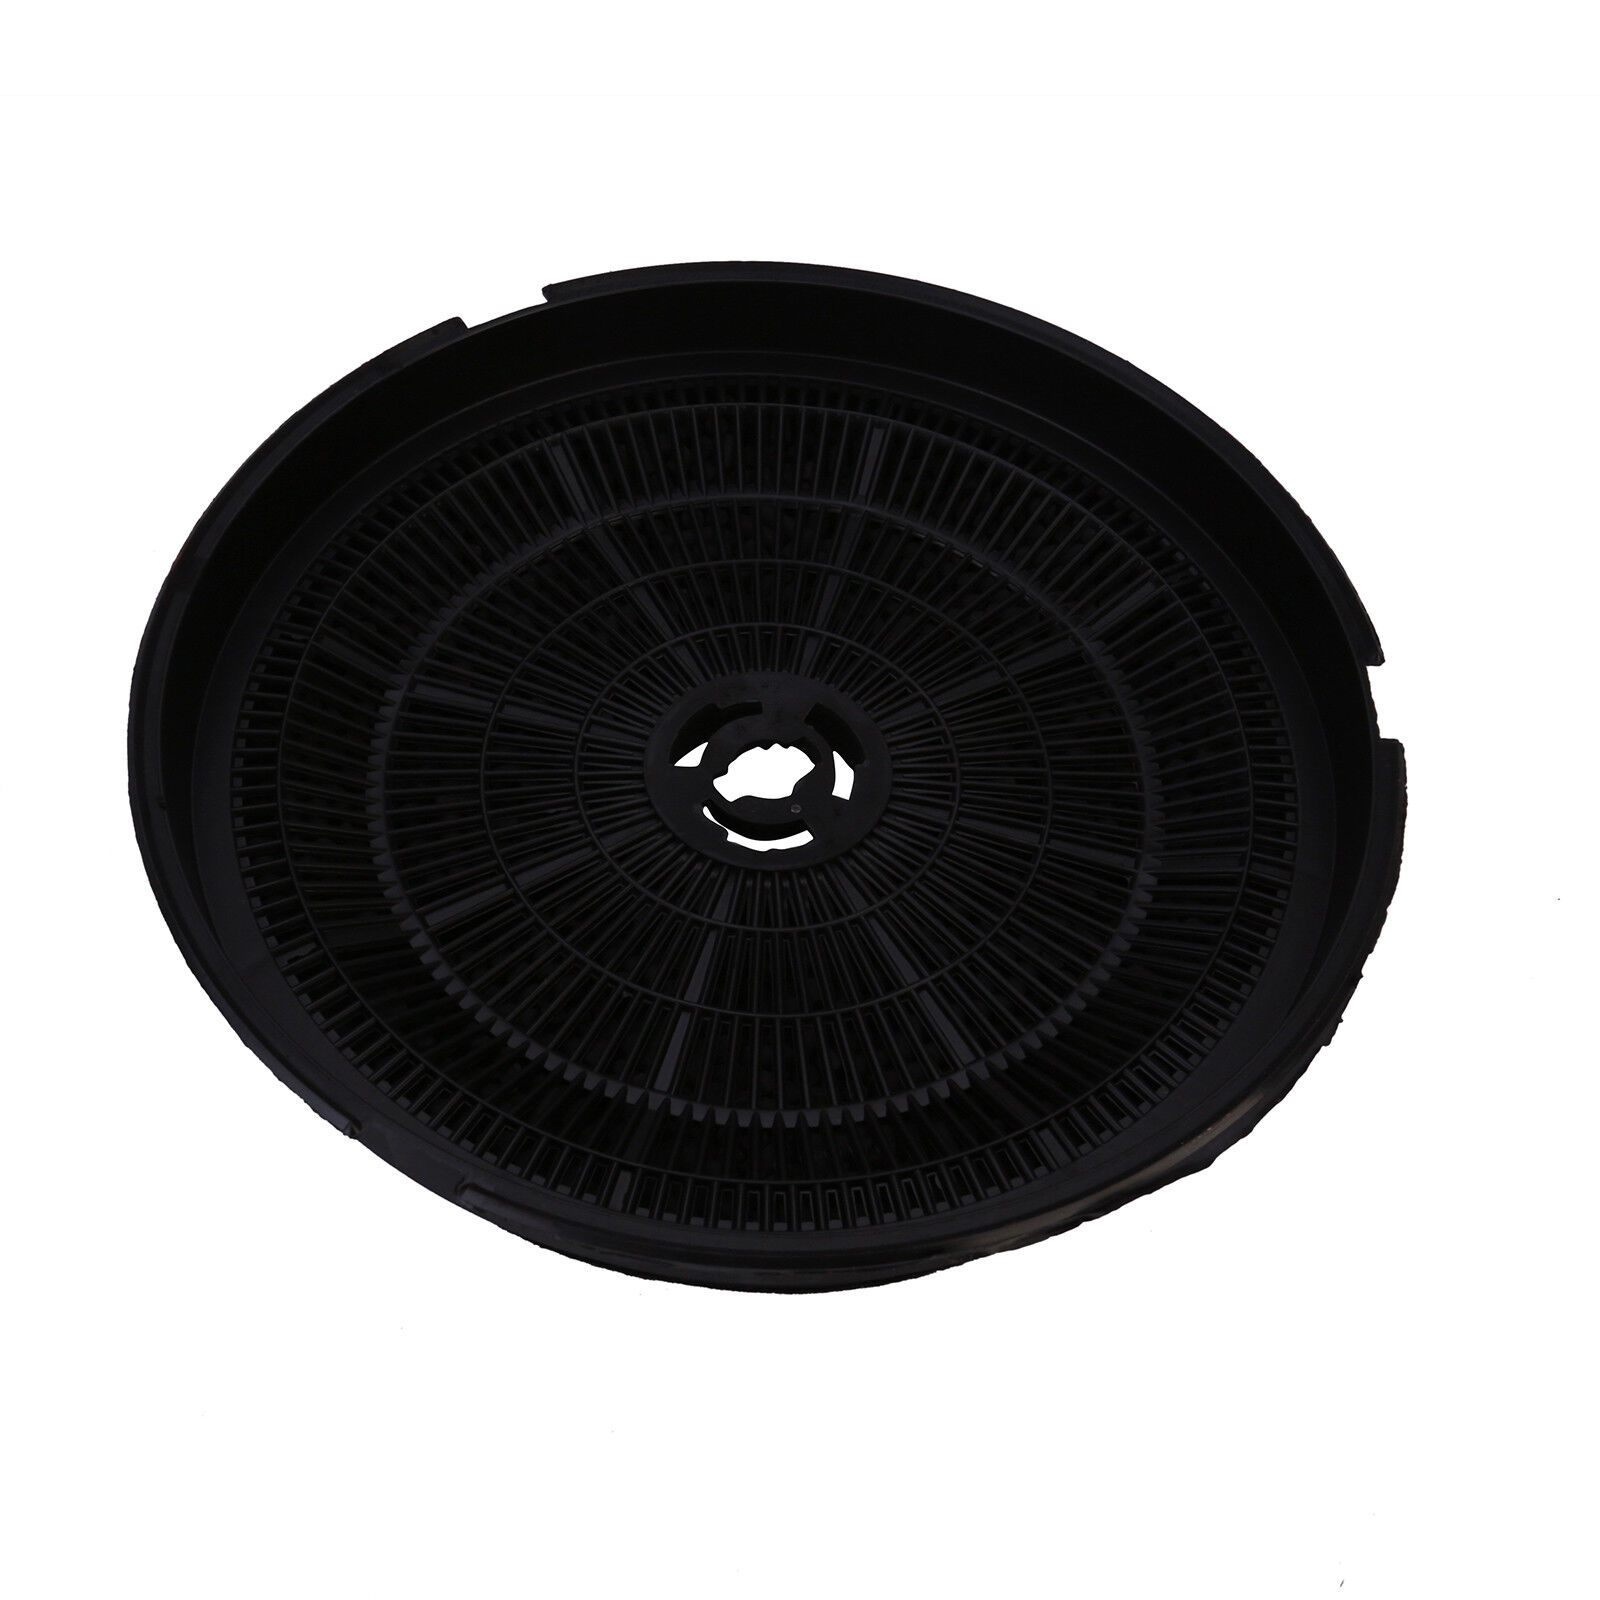 2 Carbon Charcoal Cooker Hood Filter For New World CP5 CHIM60 70 Extractors